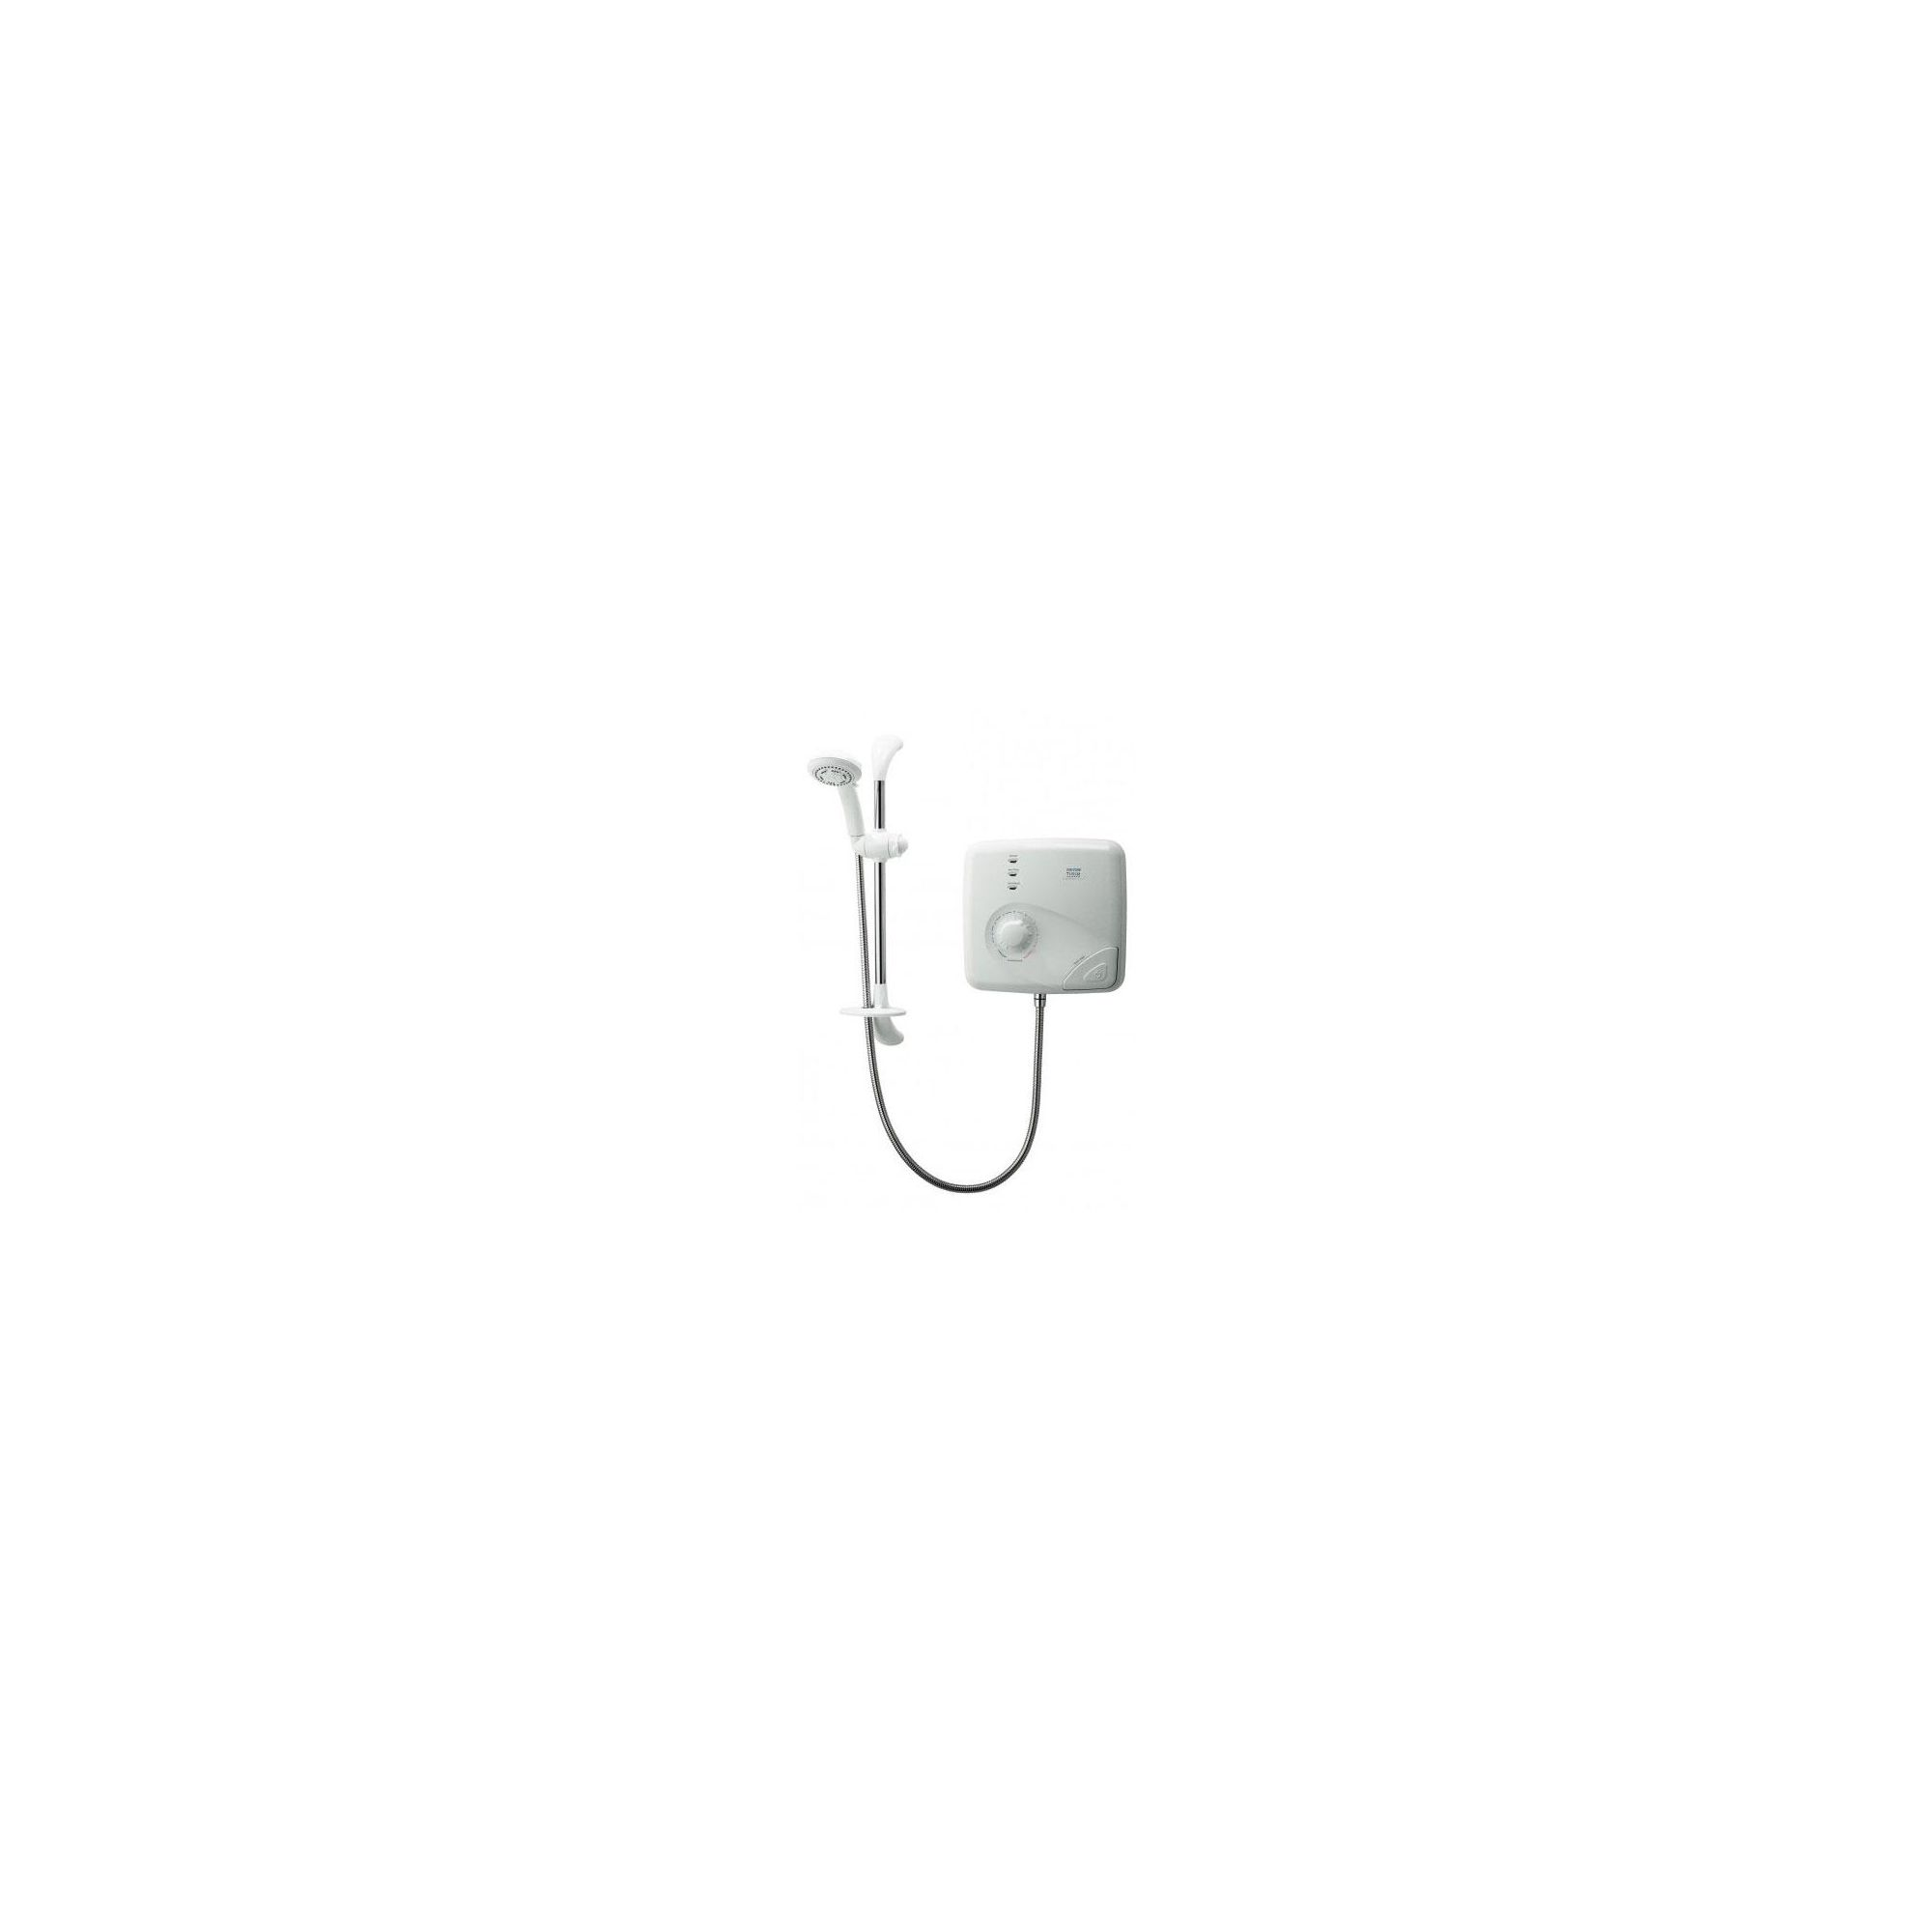 Triton T150Z Pumped Electric Shower 8.5kw White and Chrome at Tesco Direct